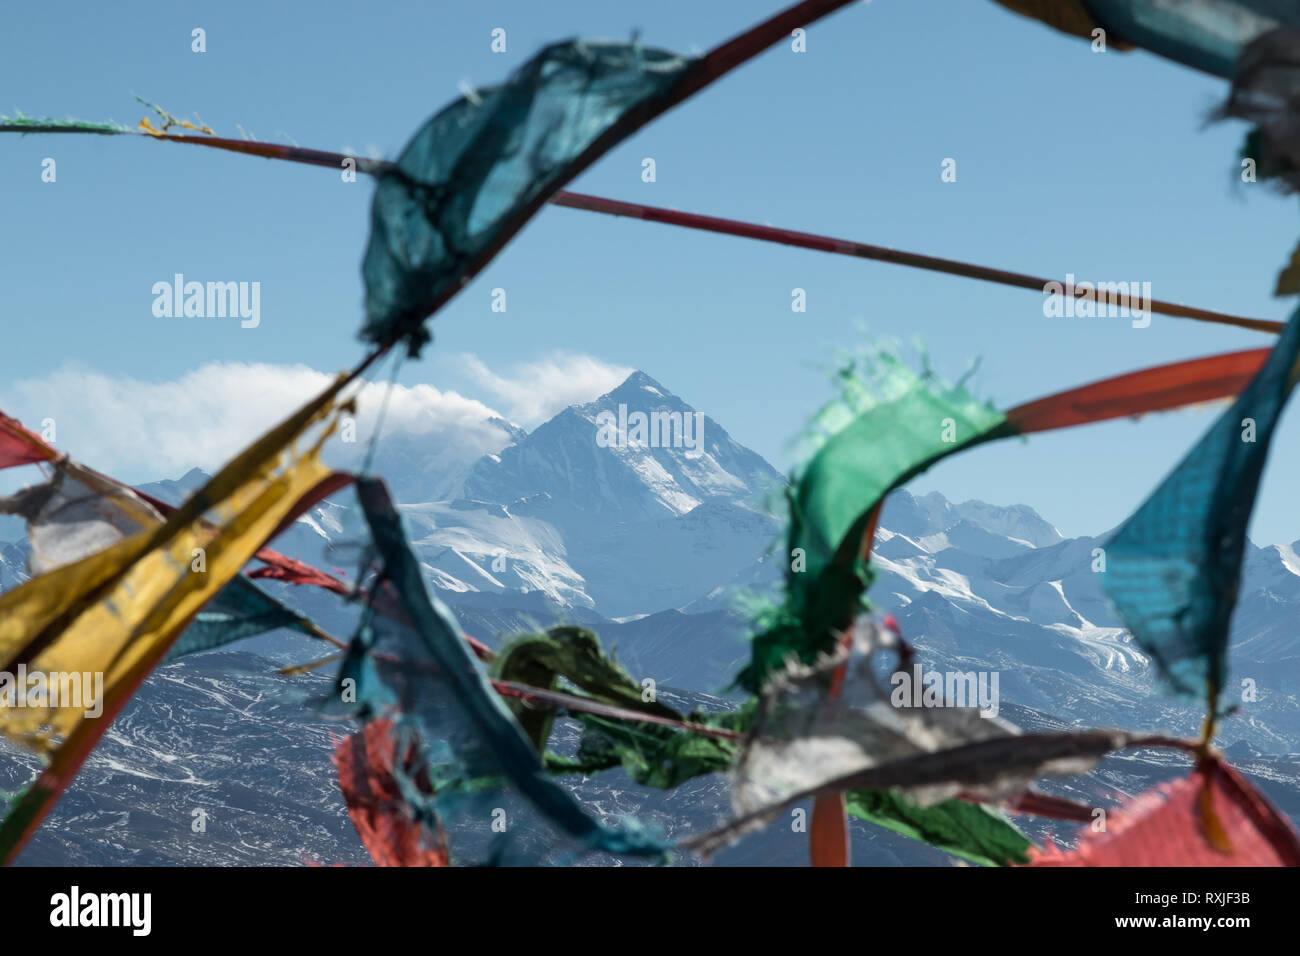 View of  prayer flags with Mountain Everest, the highest peak on Earth,  in the background. North (Tibet) side. - Stock Image